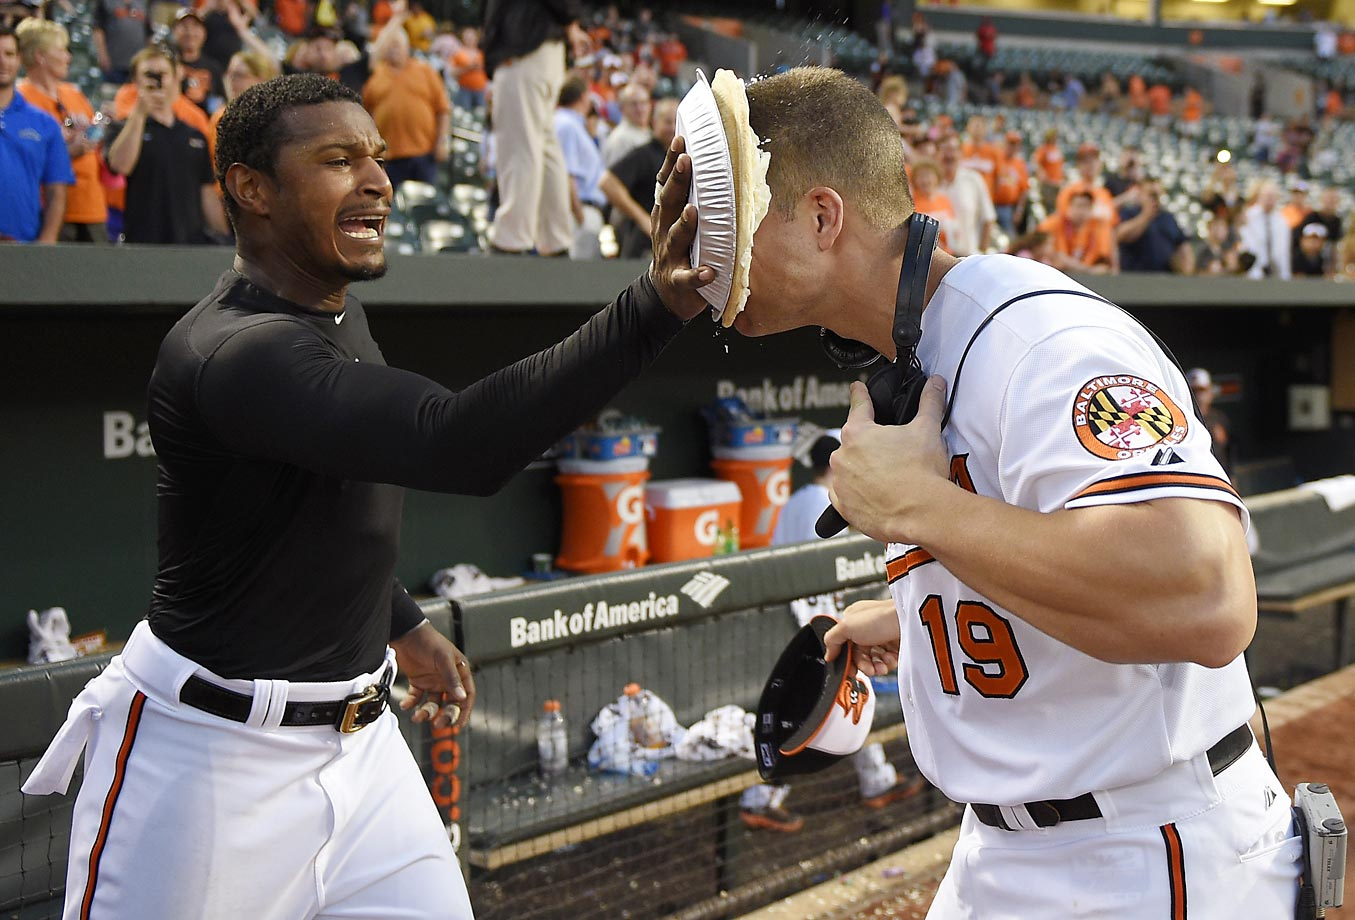 Adam Jones of the Baltimore Orioles throws a pie in the face of Chris Davis after the Orioles beat the Houston Astros 5-4.